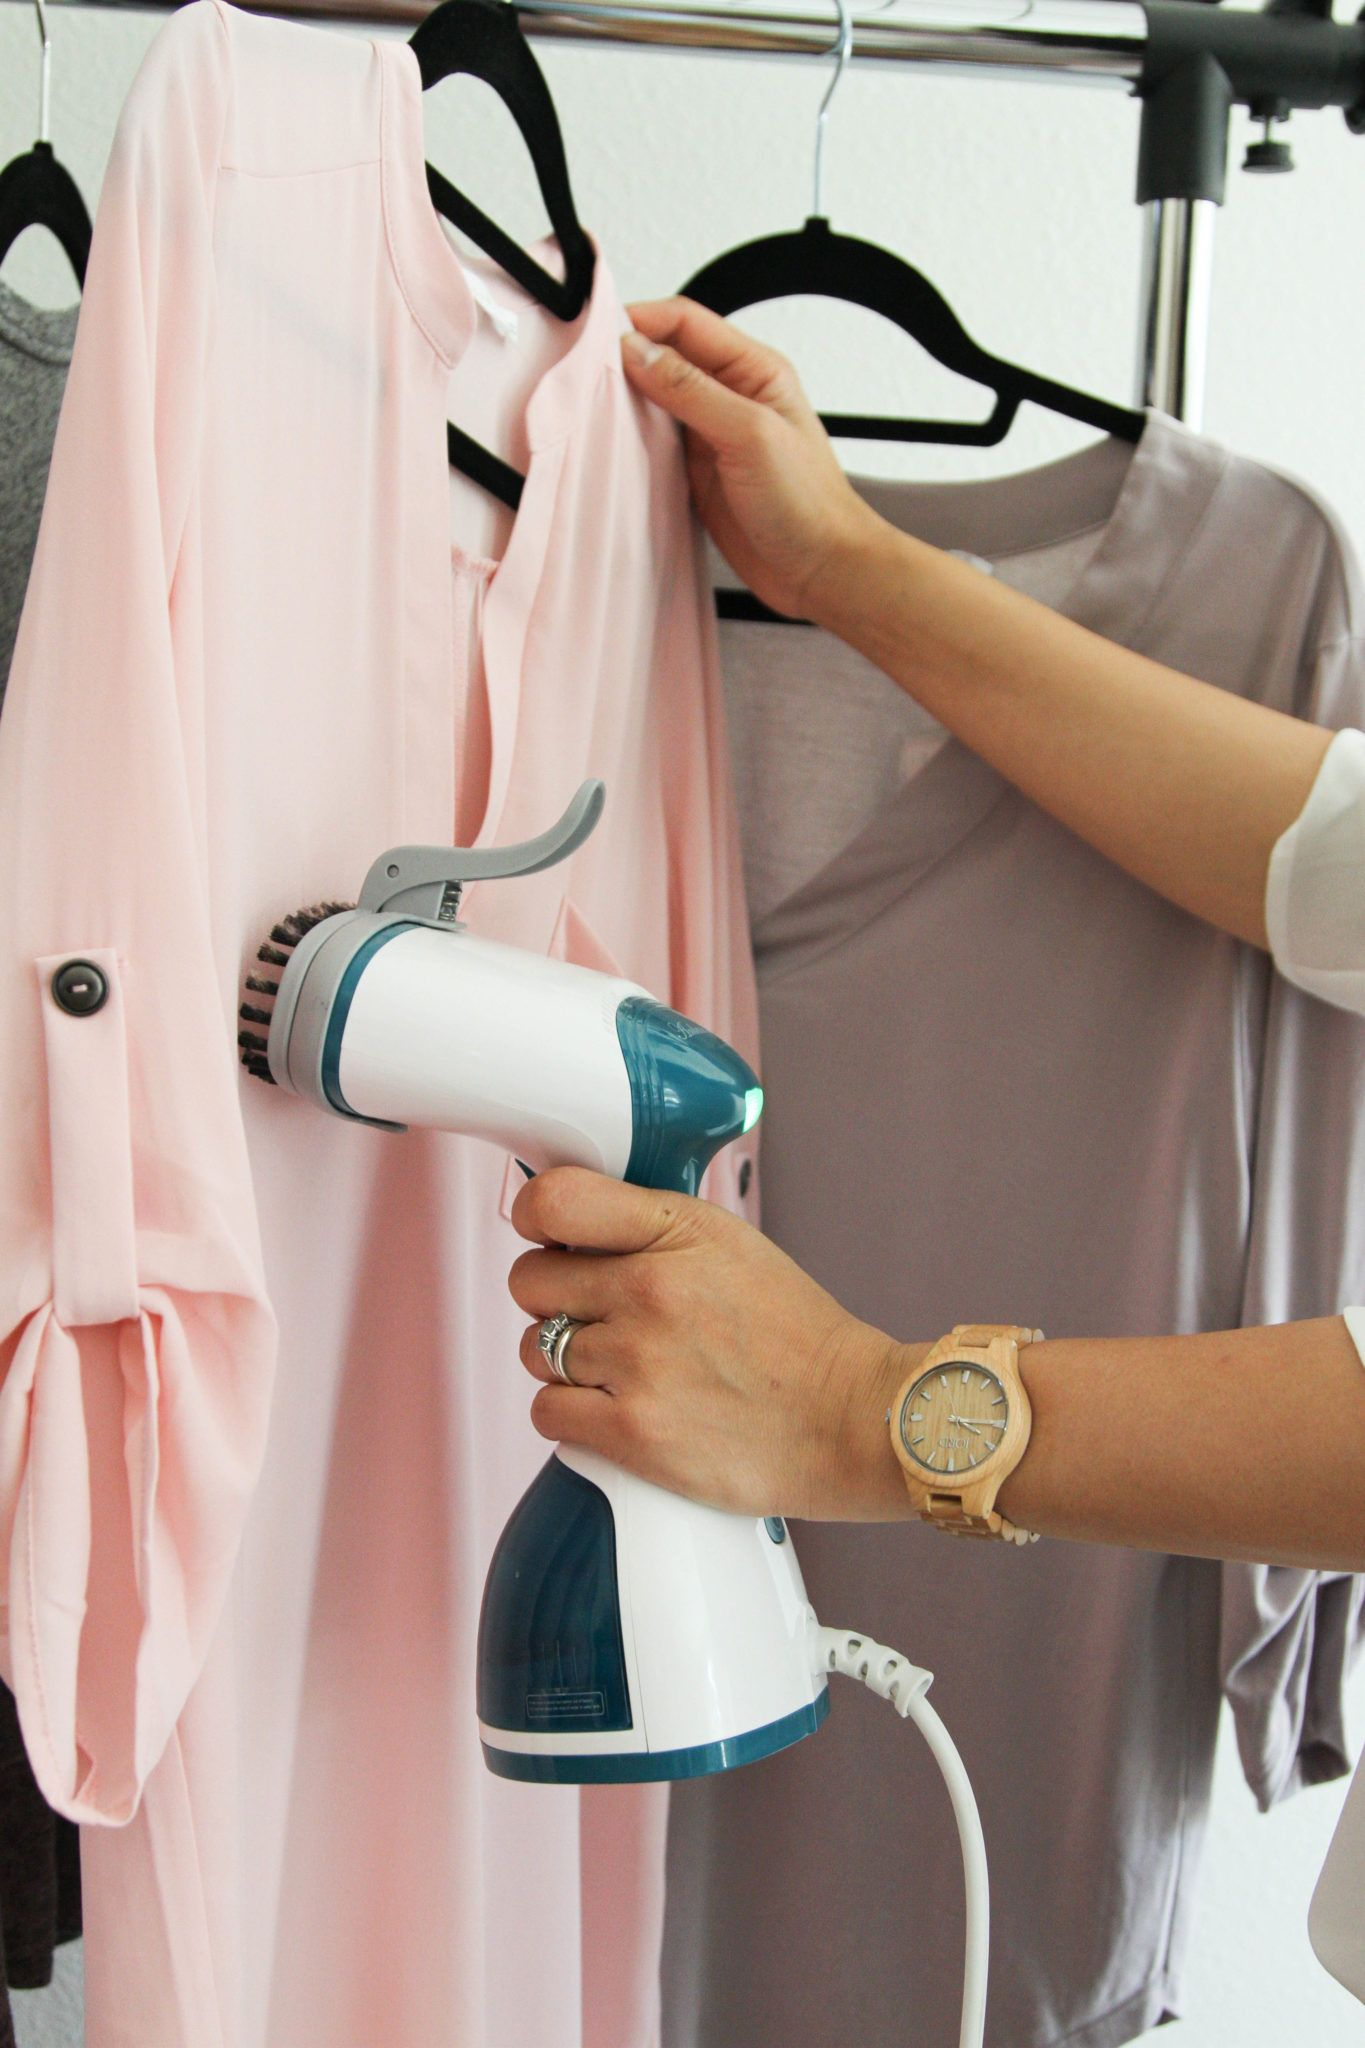 The Clothing Steamer I Use and Why I Love it (With images